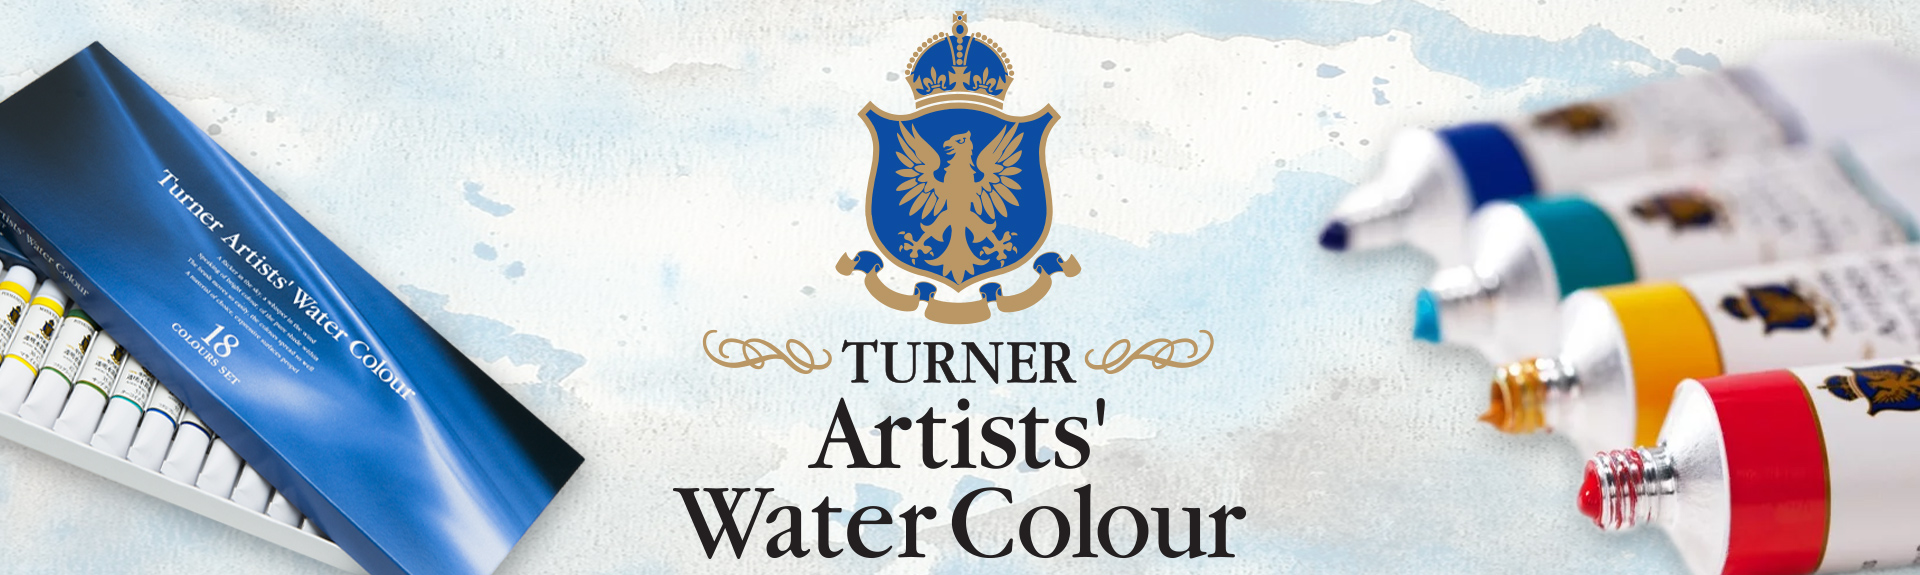 Five weeks of turner free offers